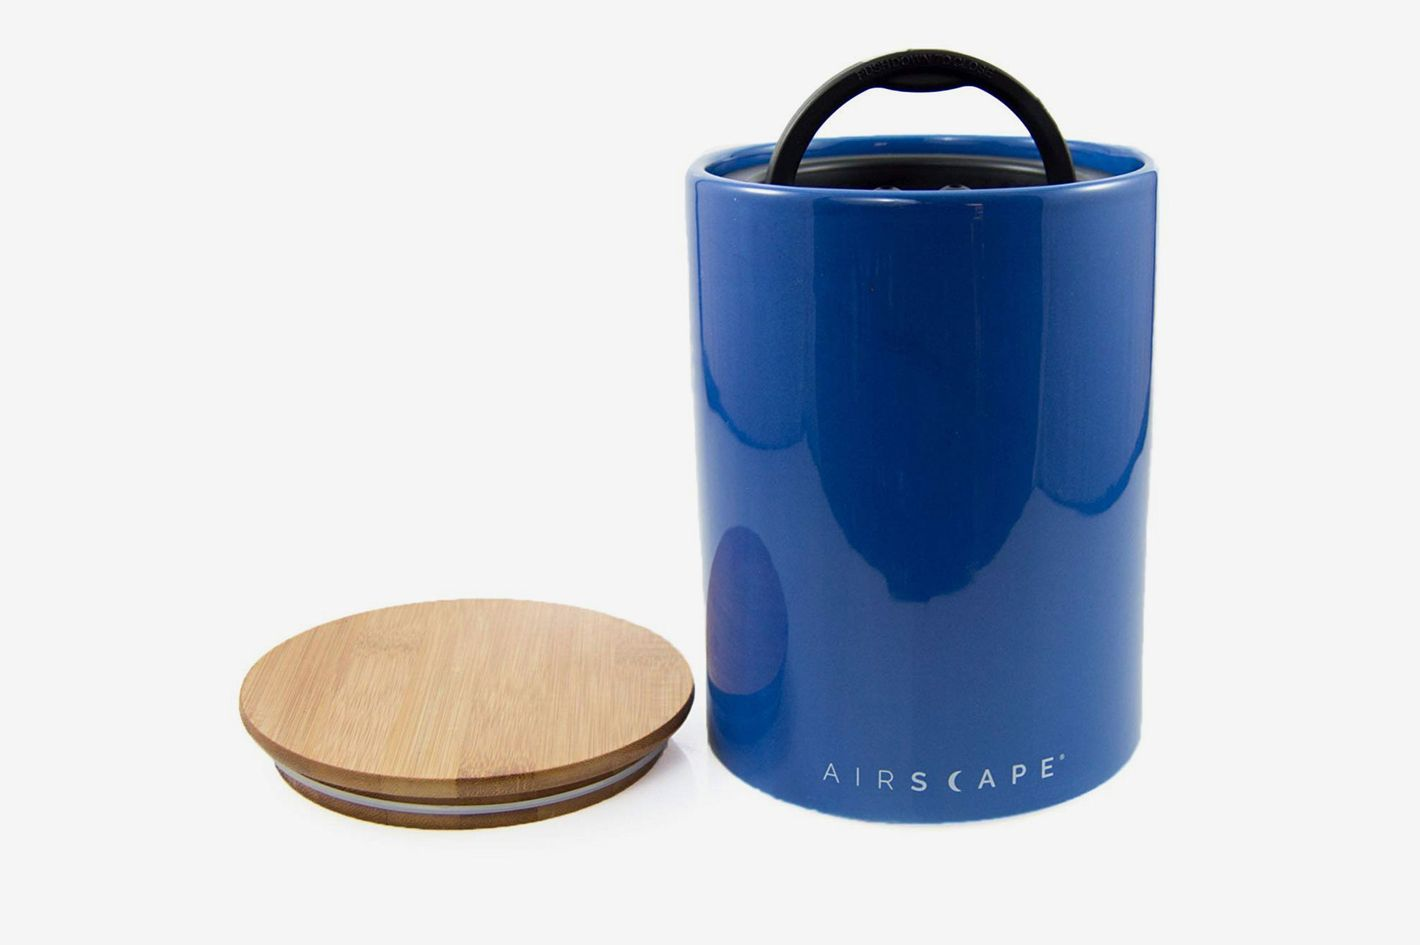 Airscape Ceramic Storage Canister (64 oz.)